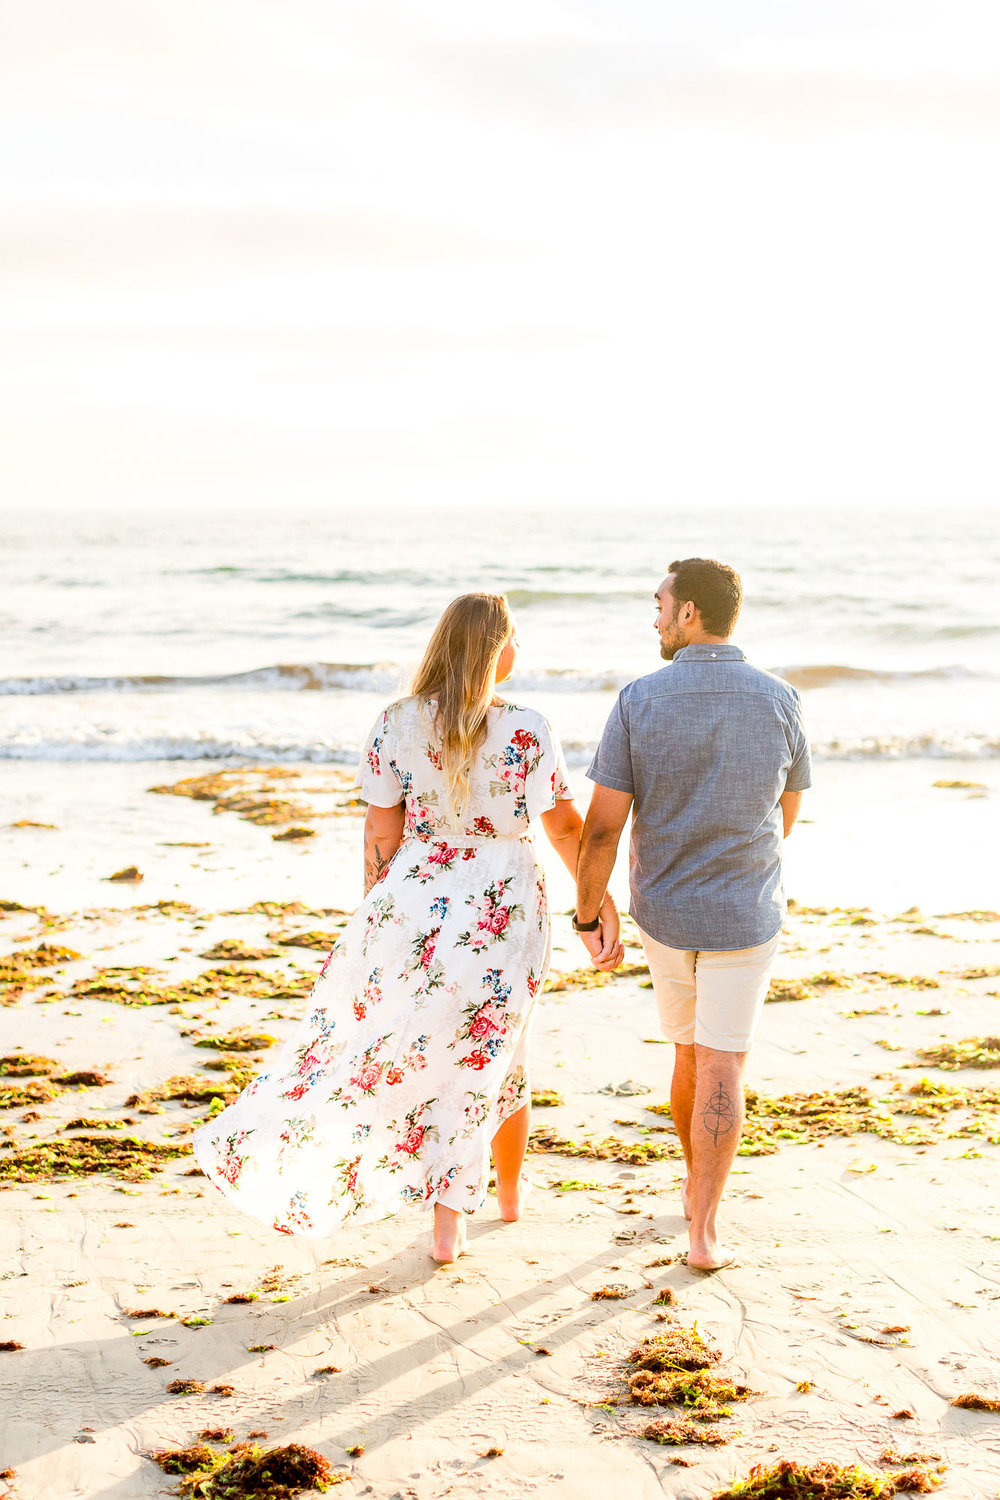 Justine_Puneet_Cardiff_Engagement_Session_216.jpg